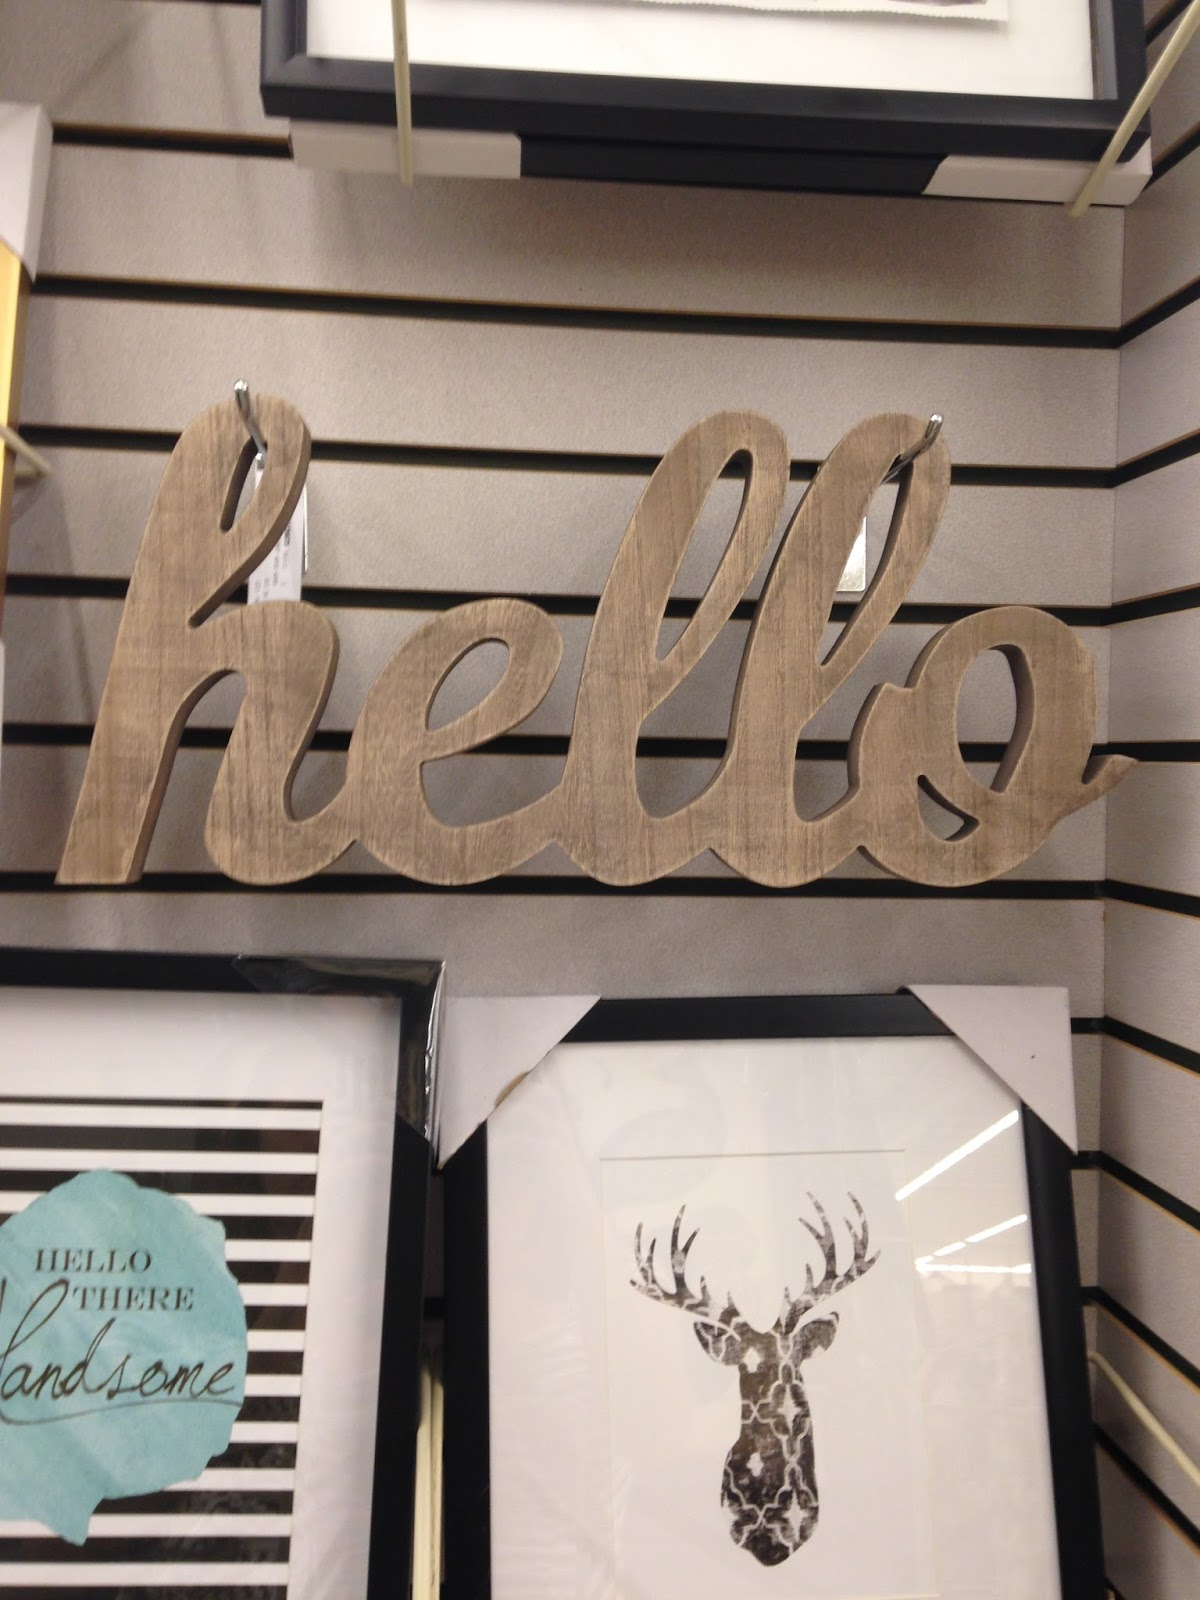 Let S Go Ping Decor Inspiration From Pier One Joann Fabrics Homegoods And